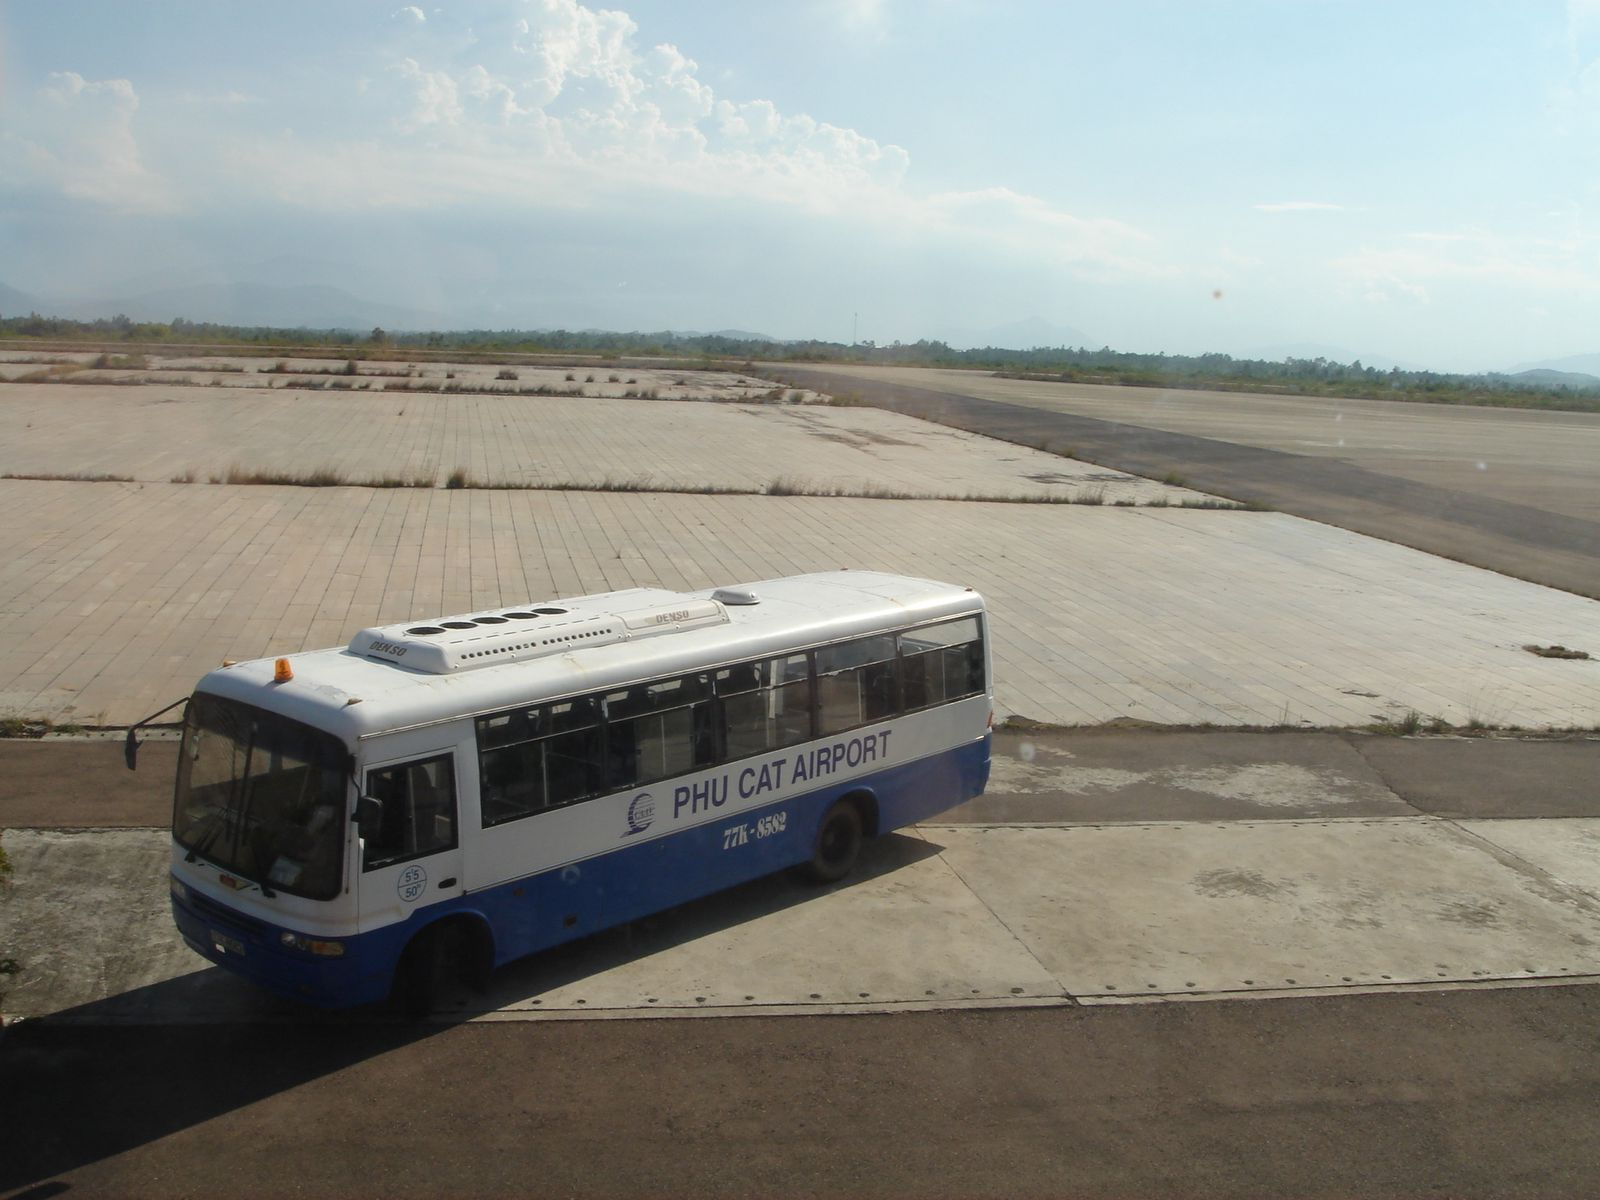 Vietnam Airlines bus, with the taxiway leading to the runway in the back.